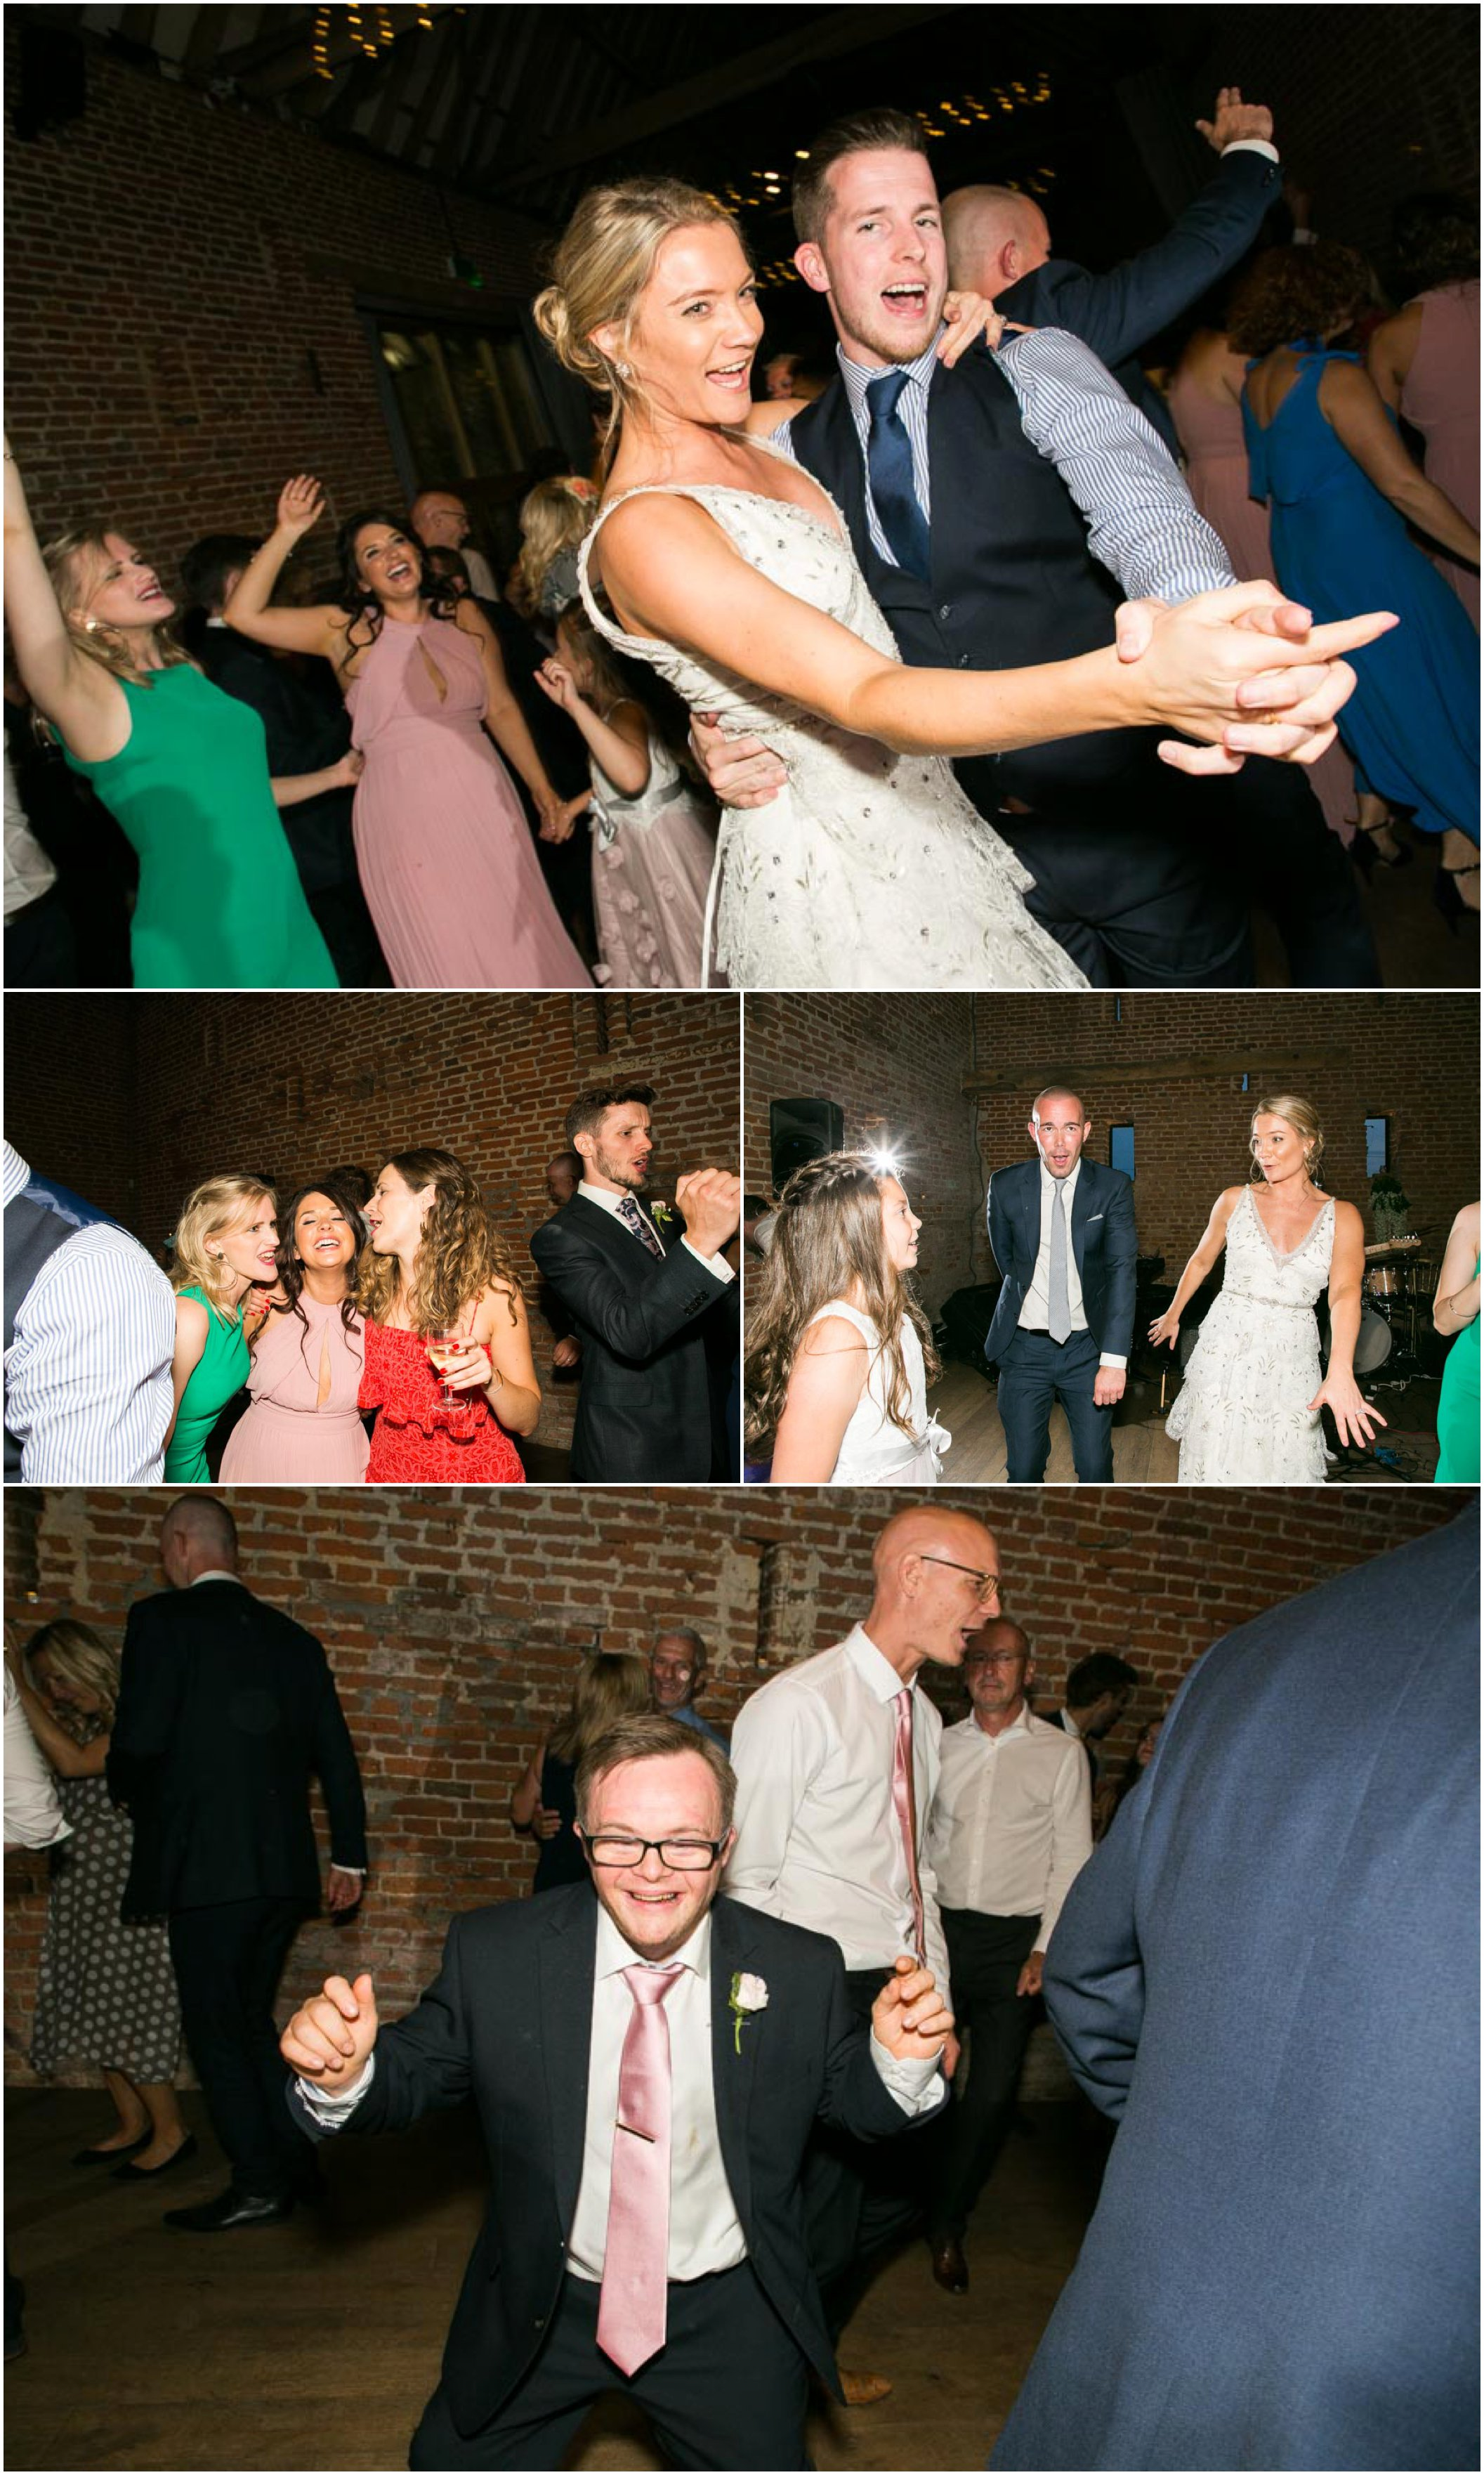 dancing at wedding reception, fun documentary moments of guests